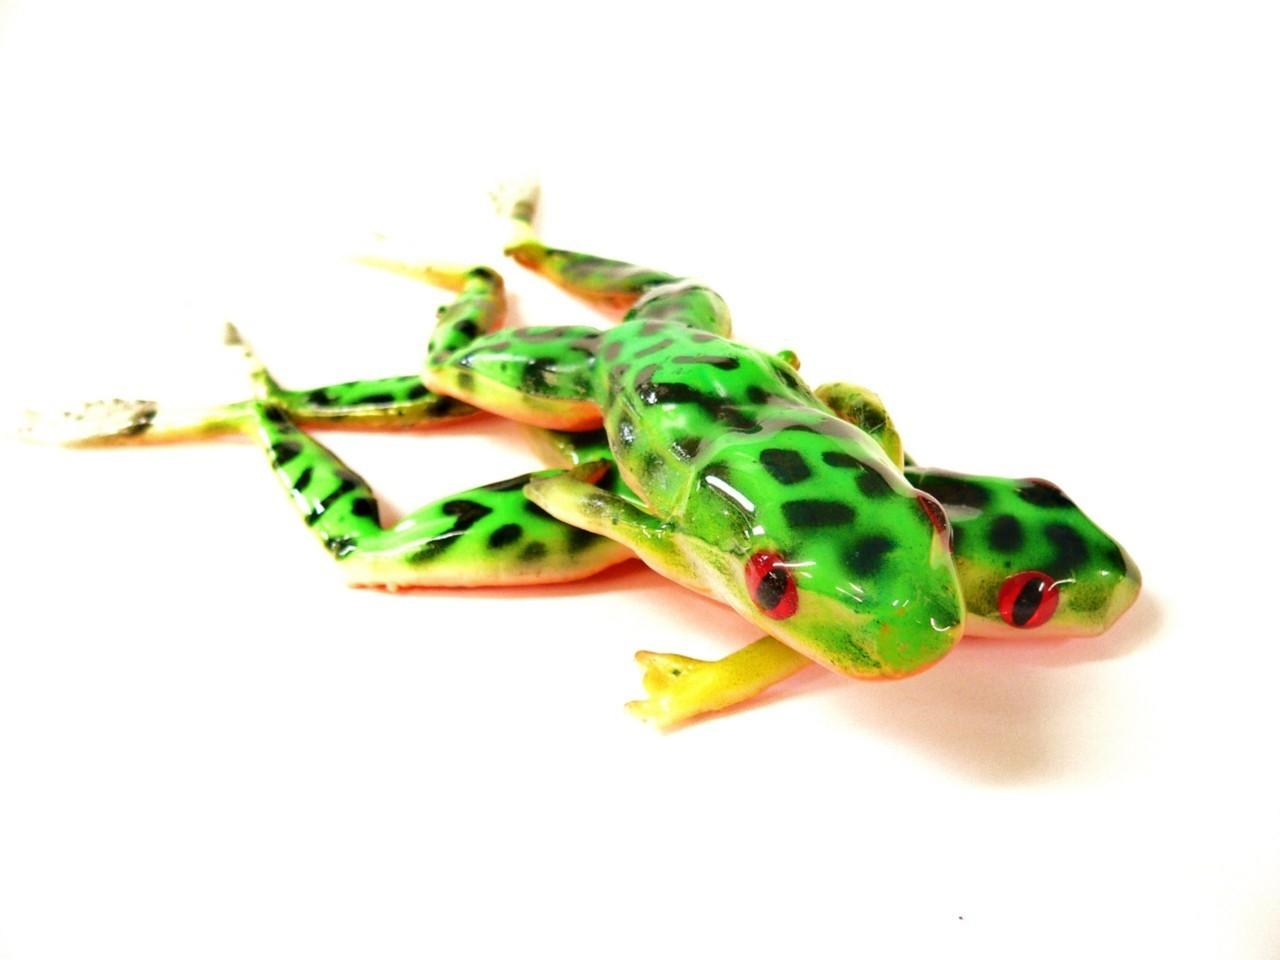 Bogbaits custom ii bog frogs 6 inch bass pike musky for Frog lures for bass fishing